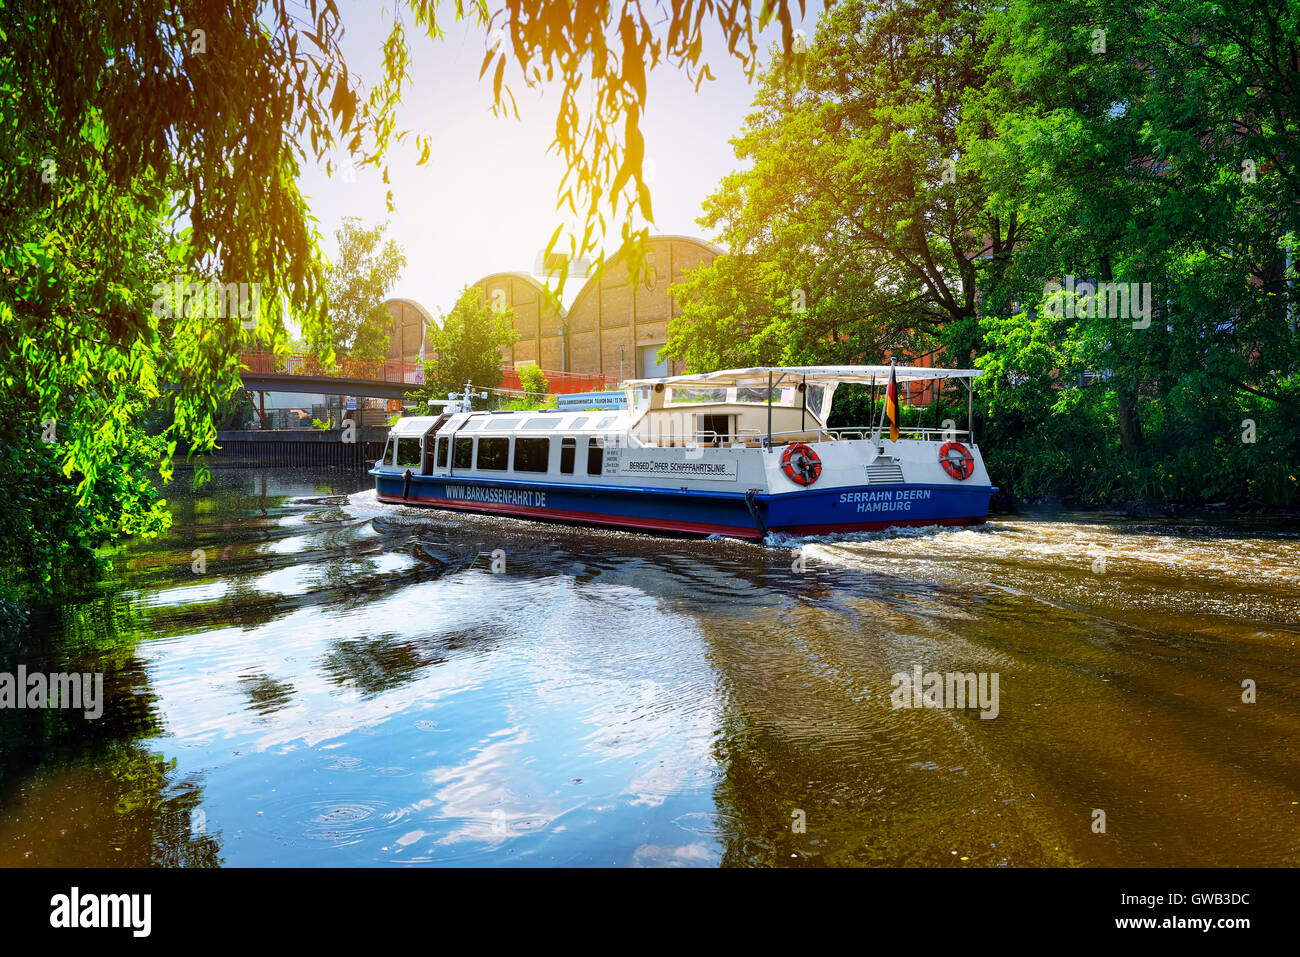 Sluice ditch and passenger ship Serrahn Deern in mountain village, Hamburg, Germany, Europe, Schleusengraben und - Stock Image